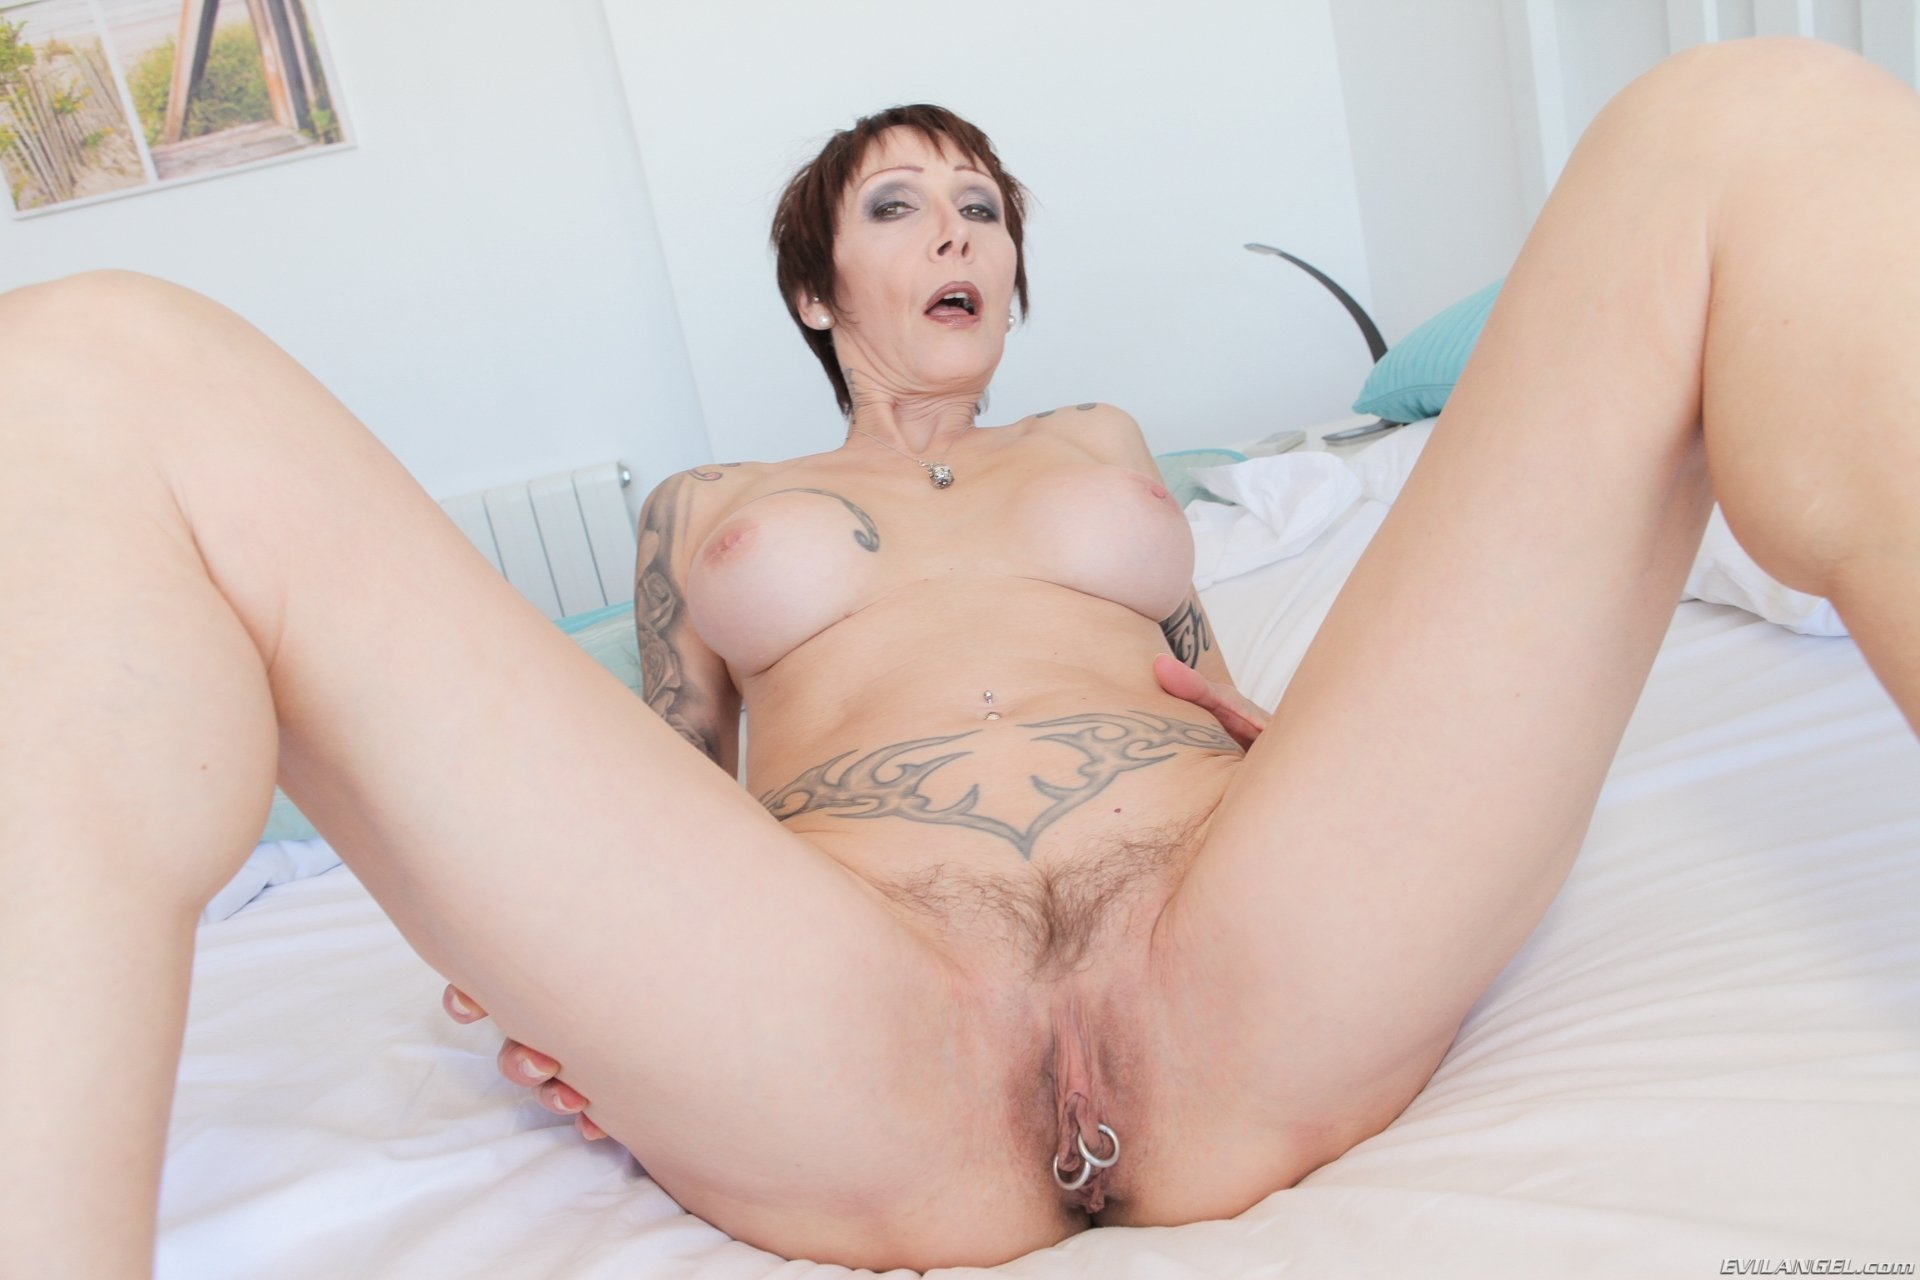 Carly moore nude pics